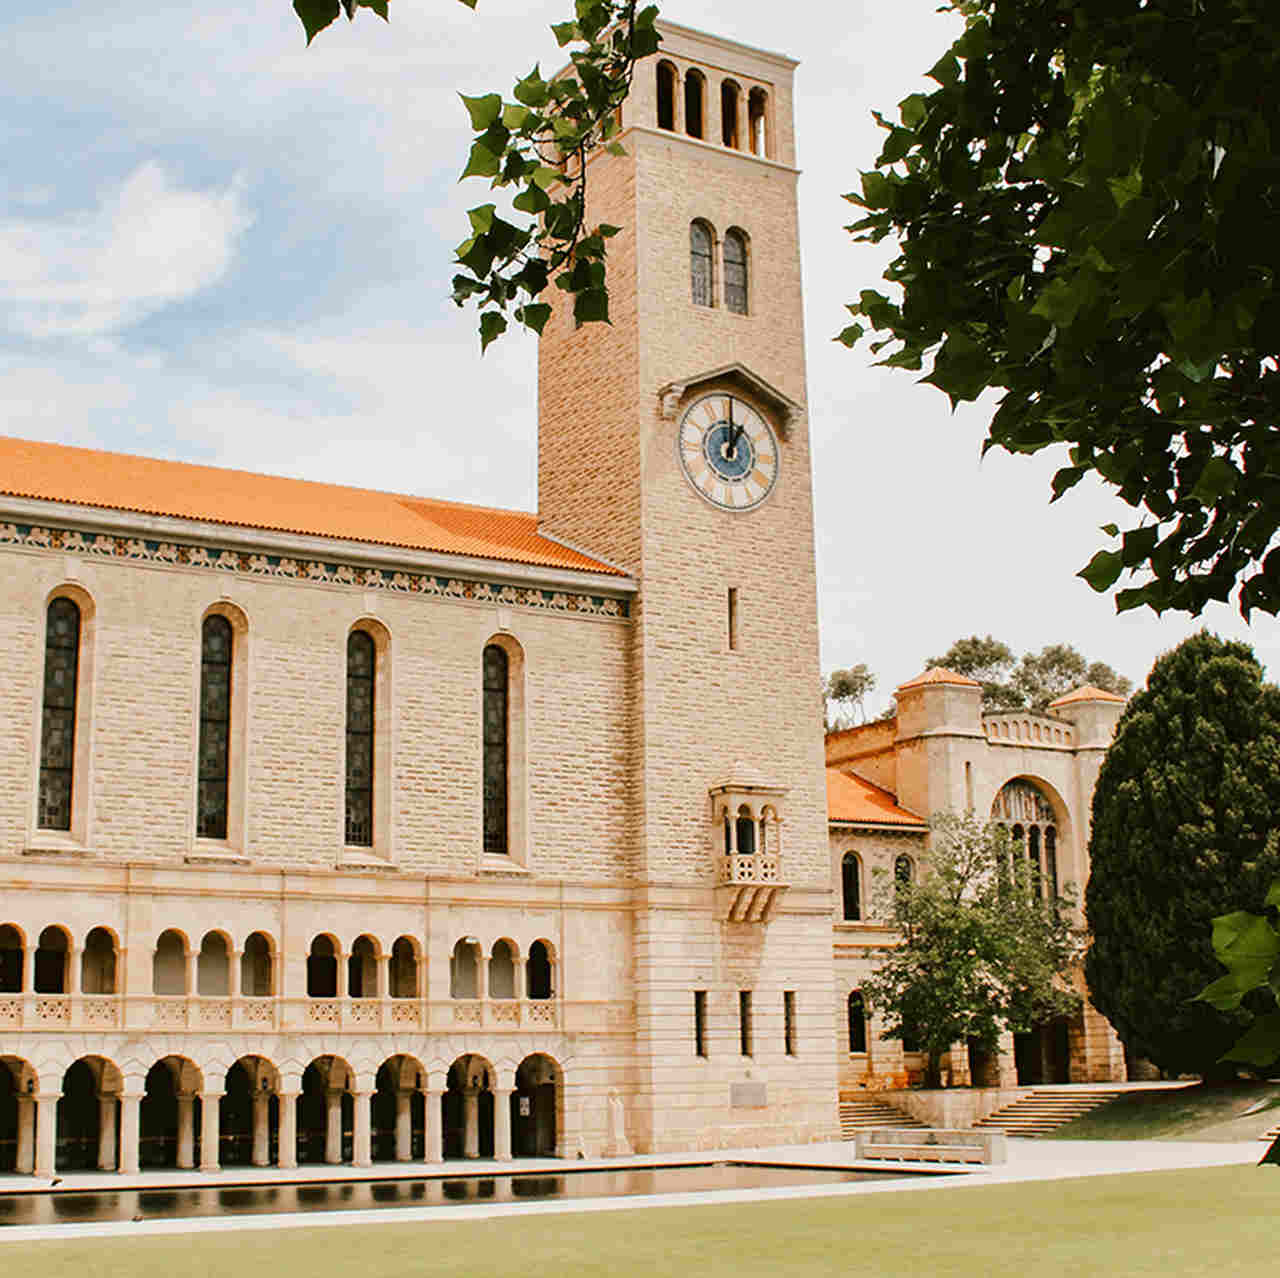 Building, Architecture, Facade, Convent, Medieval architecture, Classical architecture, Tree, Church, College, University of Western Australia, The University of Western Australia, National University of Singapore, University, Doctor of Philosophy